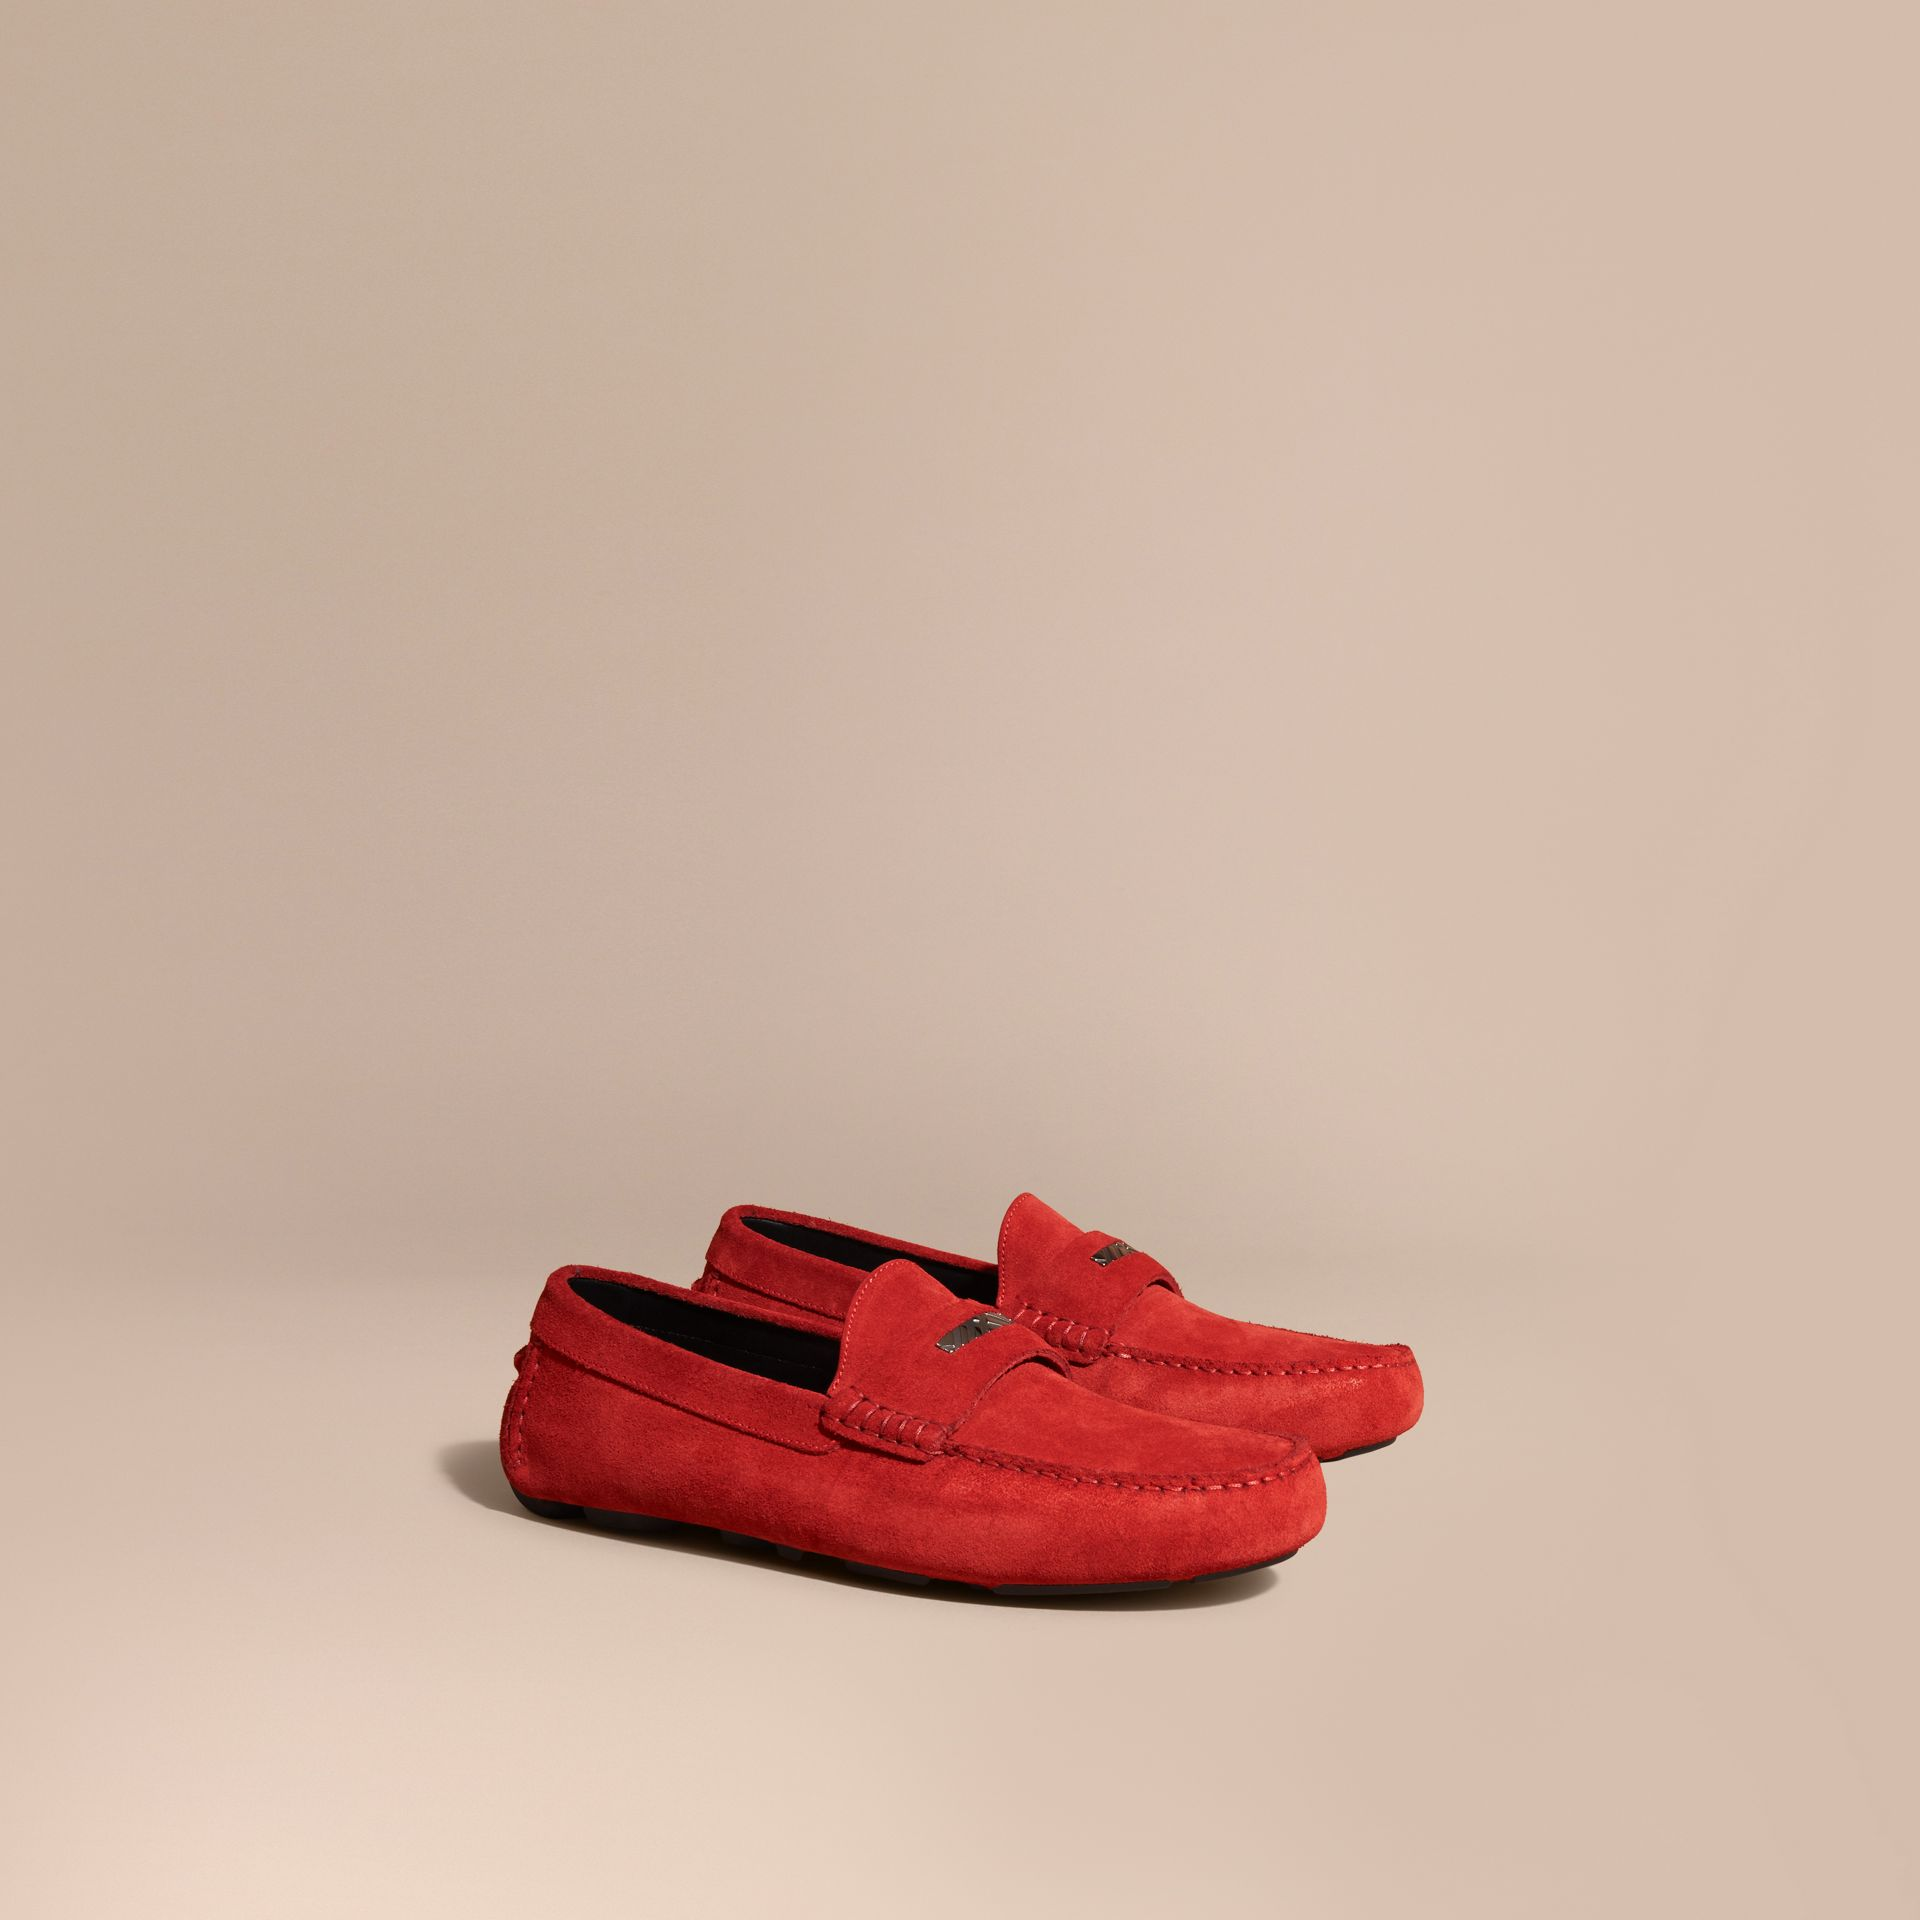 Bright rowenberry Suede Loafers with Engraved Check Detail Bright Rowenberry - gallery image 1